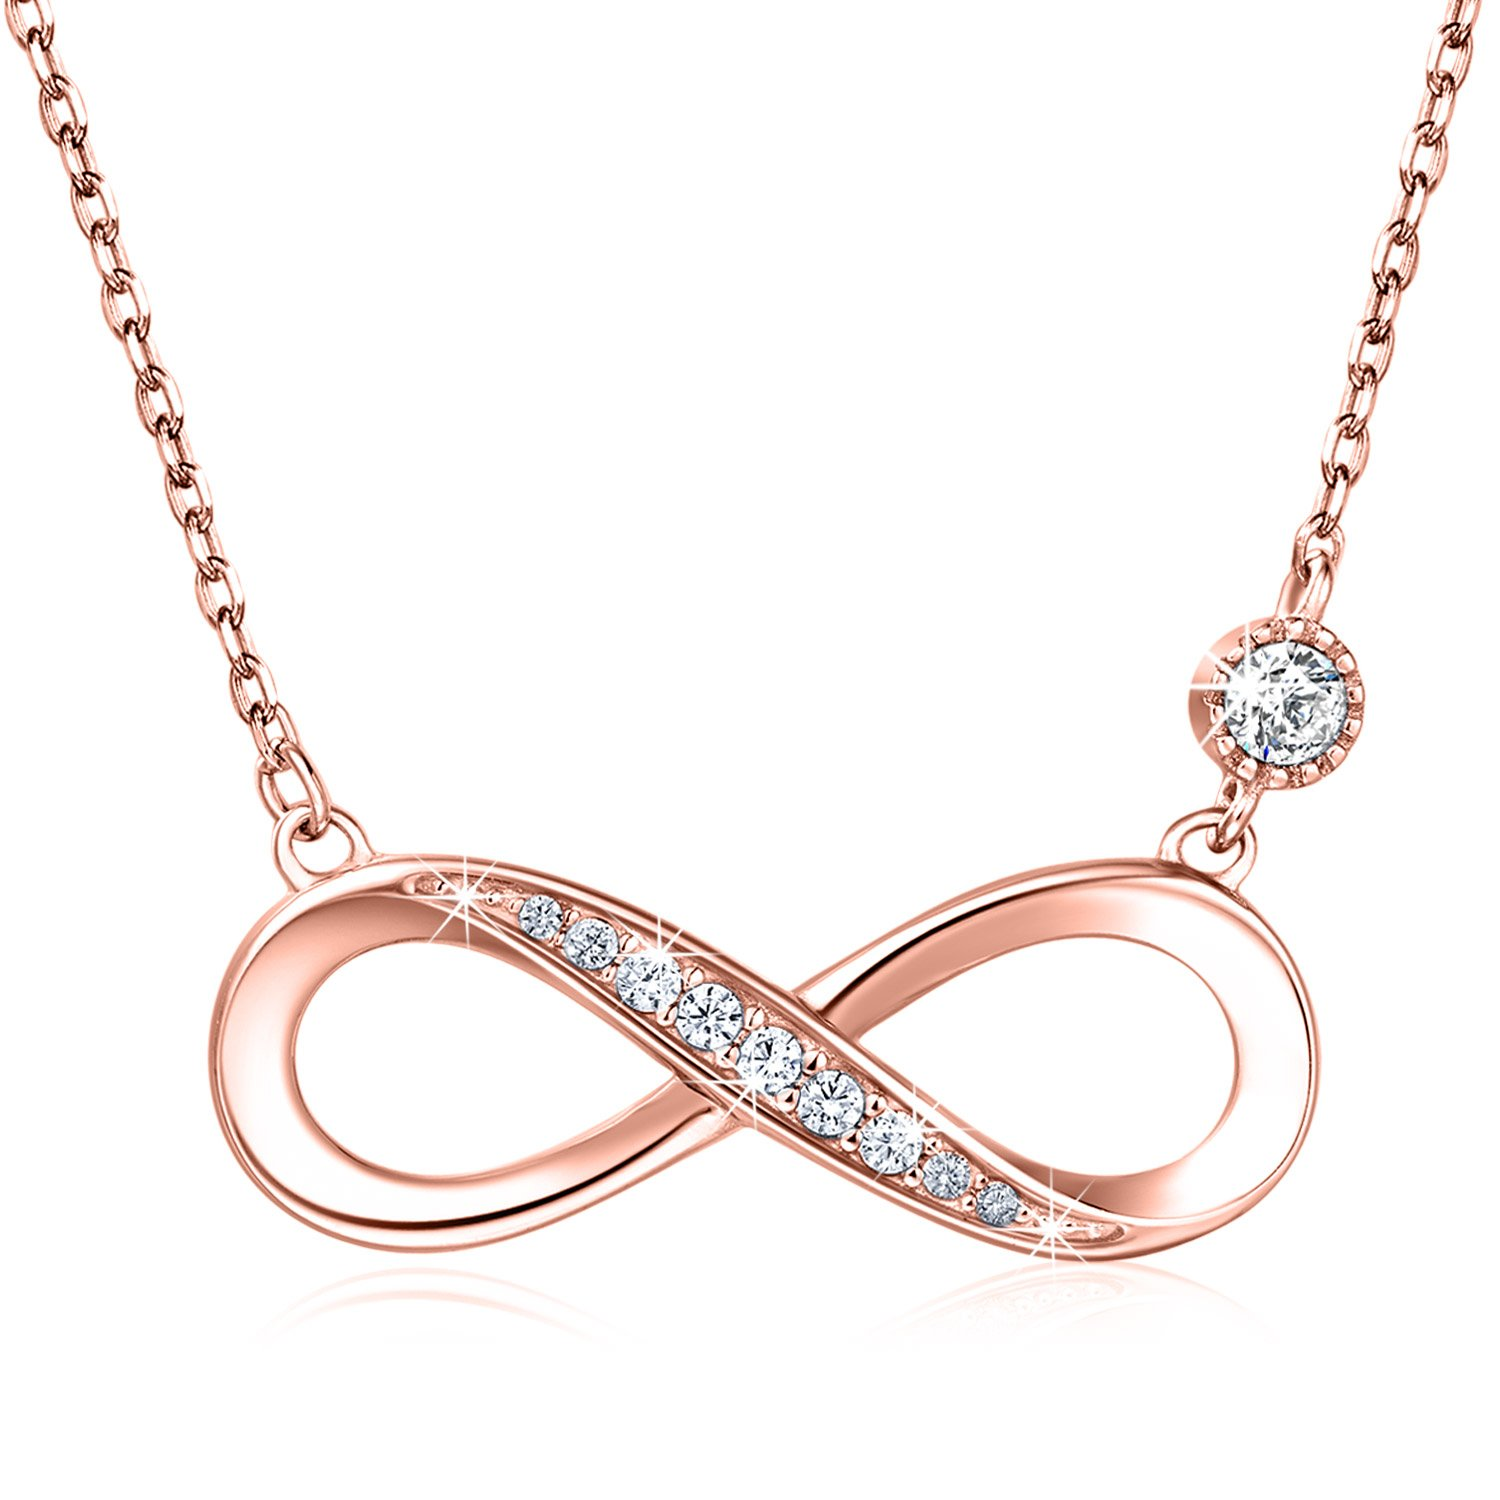 "Billie Bijoux 925 Sterling Silver Necklace Forever Love"" Infinity Heart Love Pendant White Gold Plated Diamond Women Necklace Gift for Women Mom (Rose Gold)"